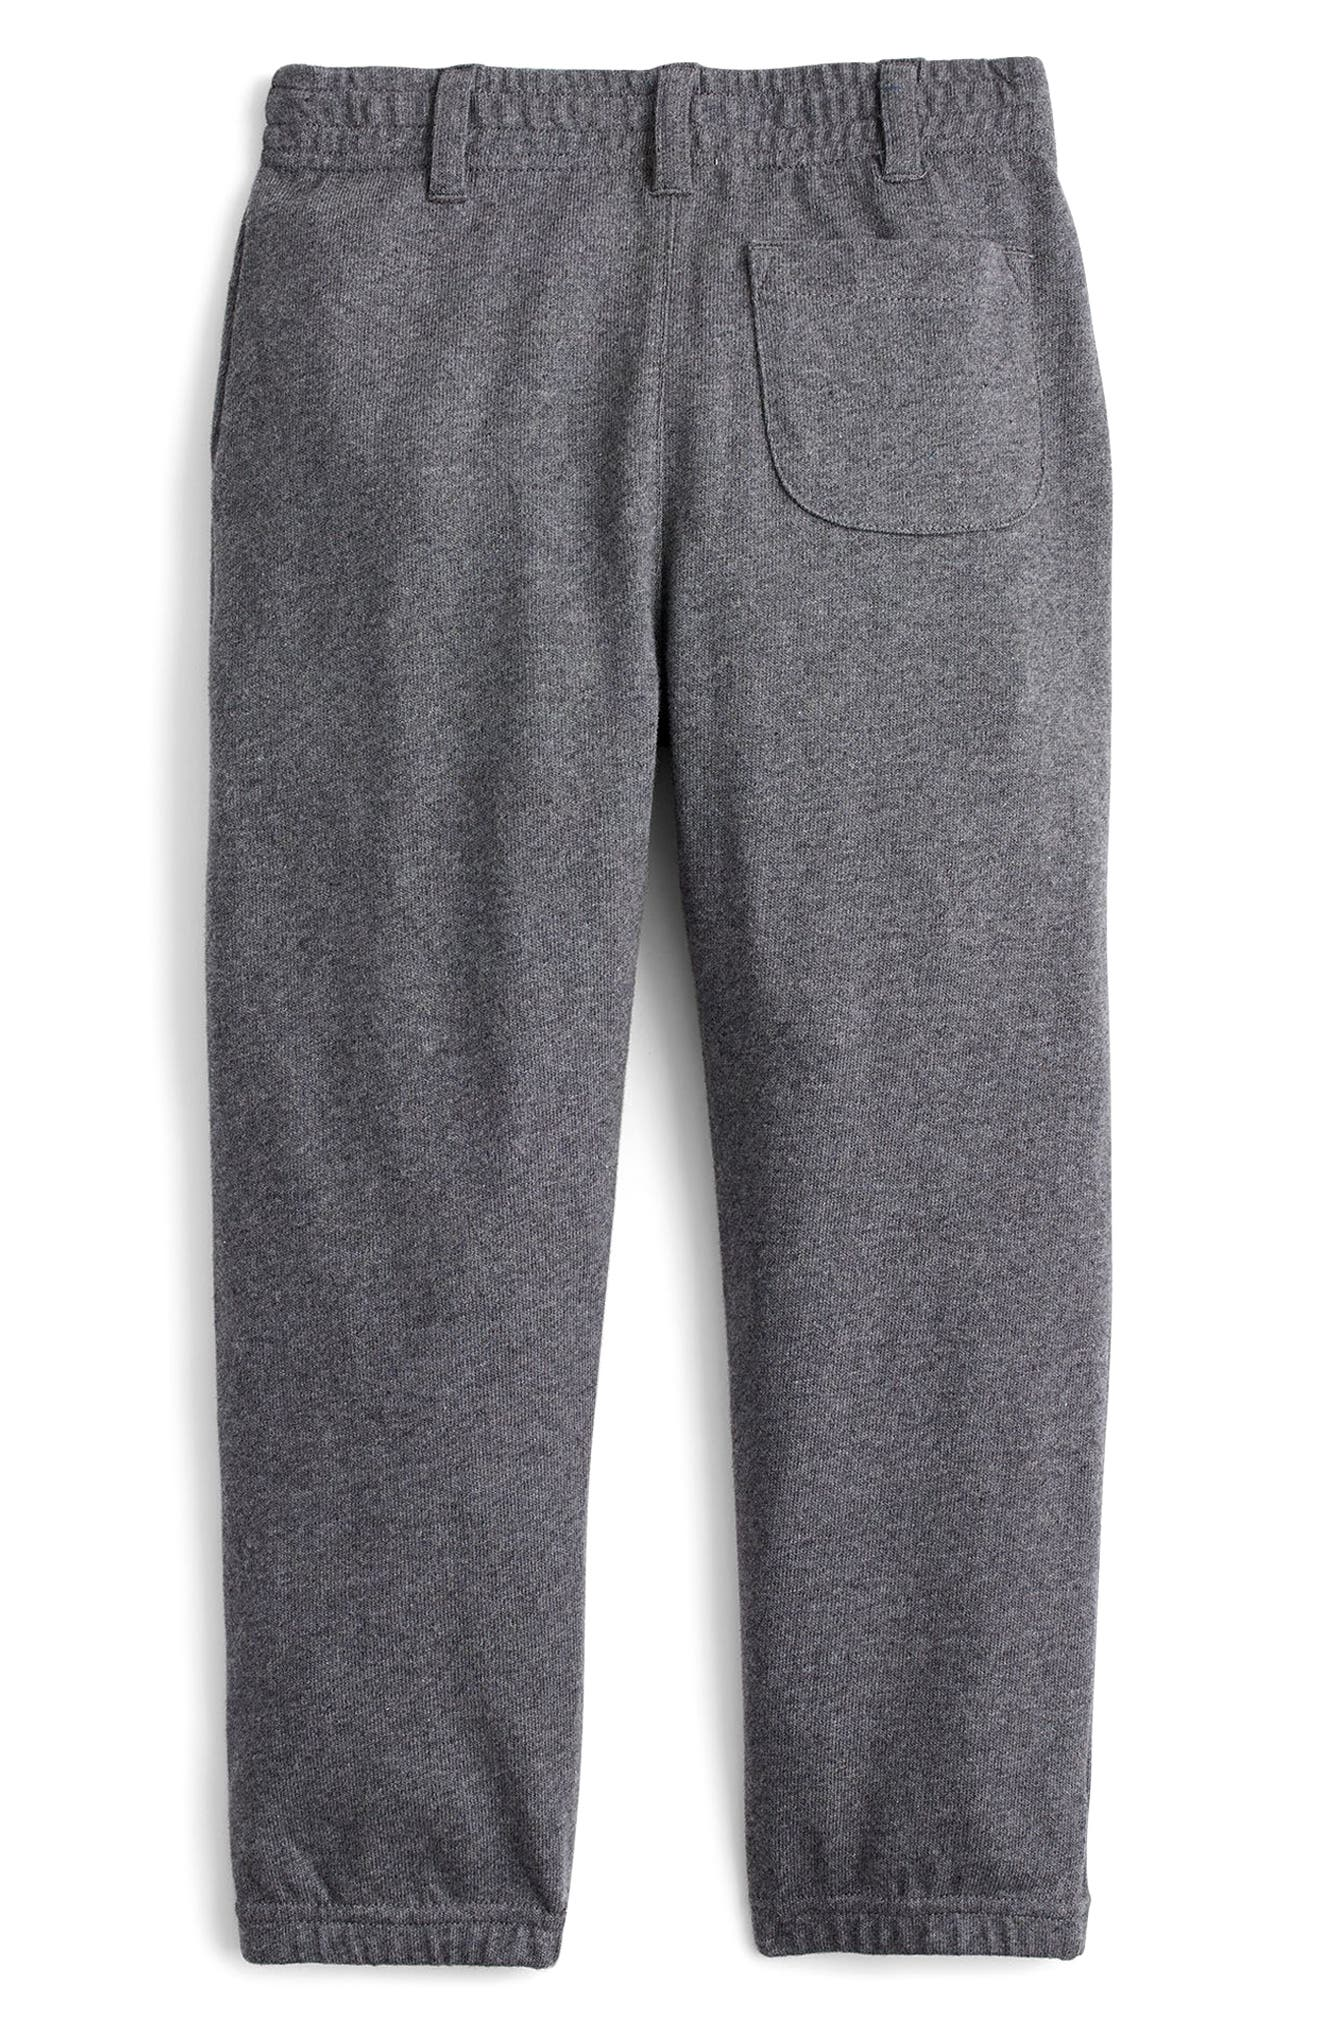 Trouser Sweatpants,                             Alternate thumbnail 2, color,                             020